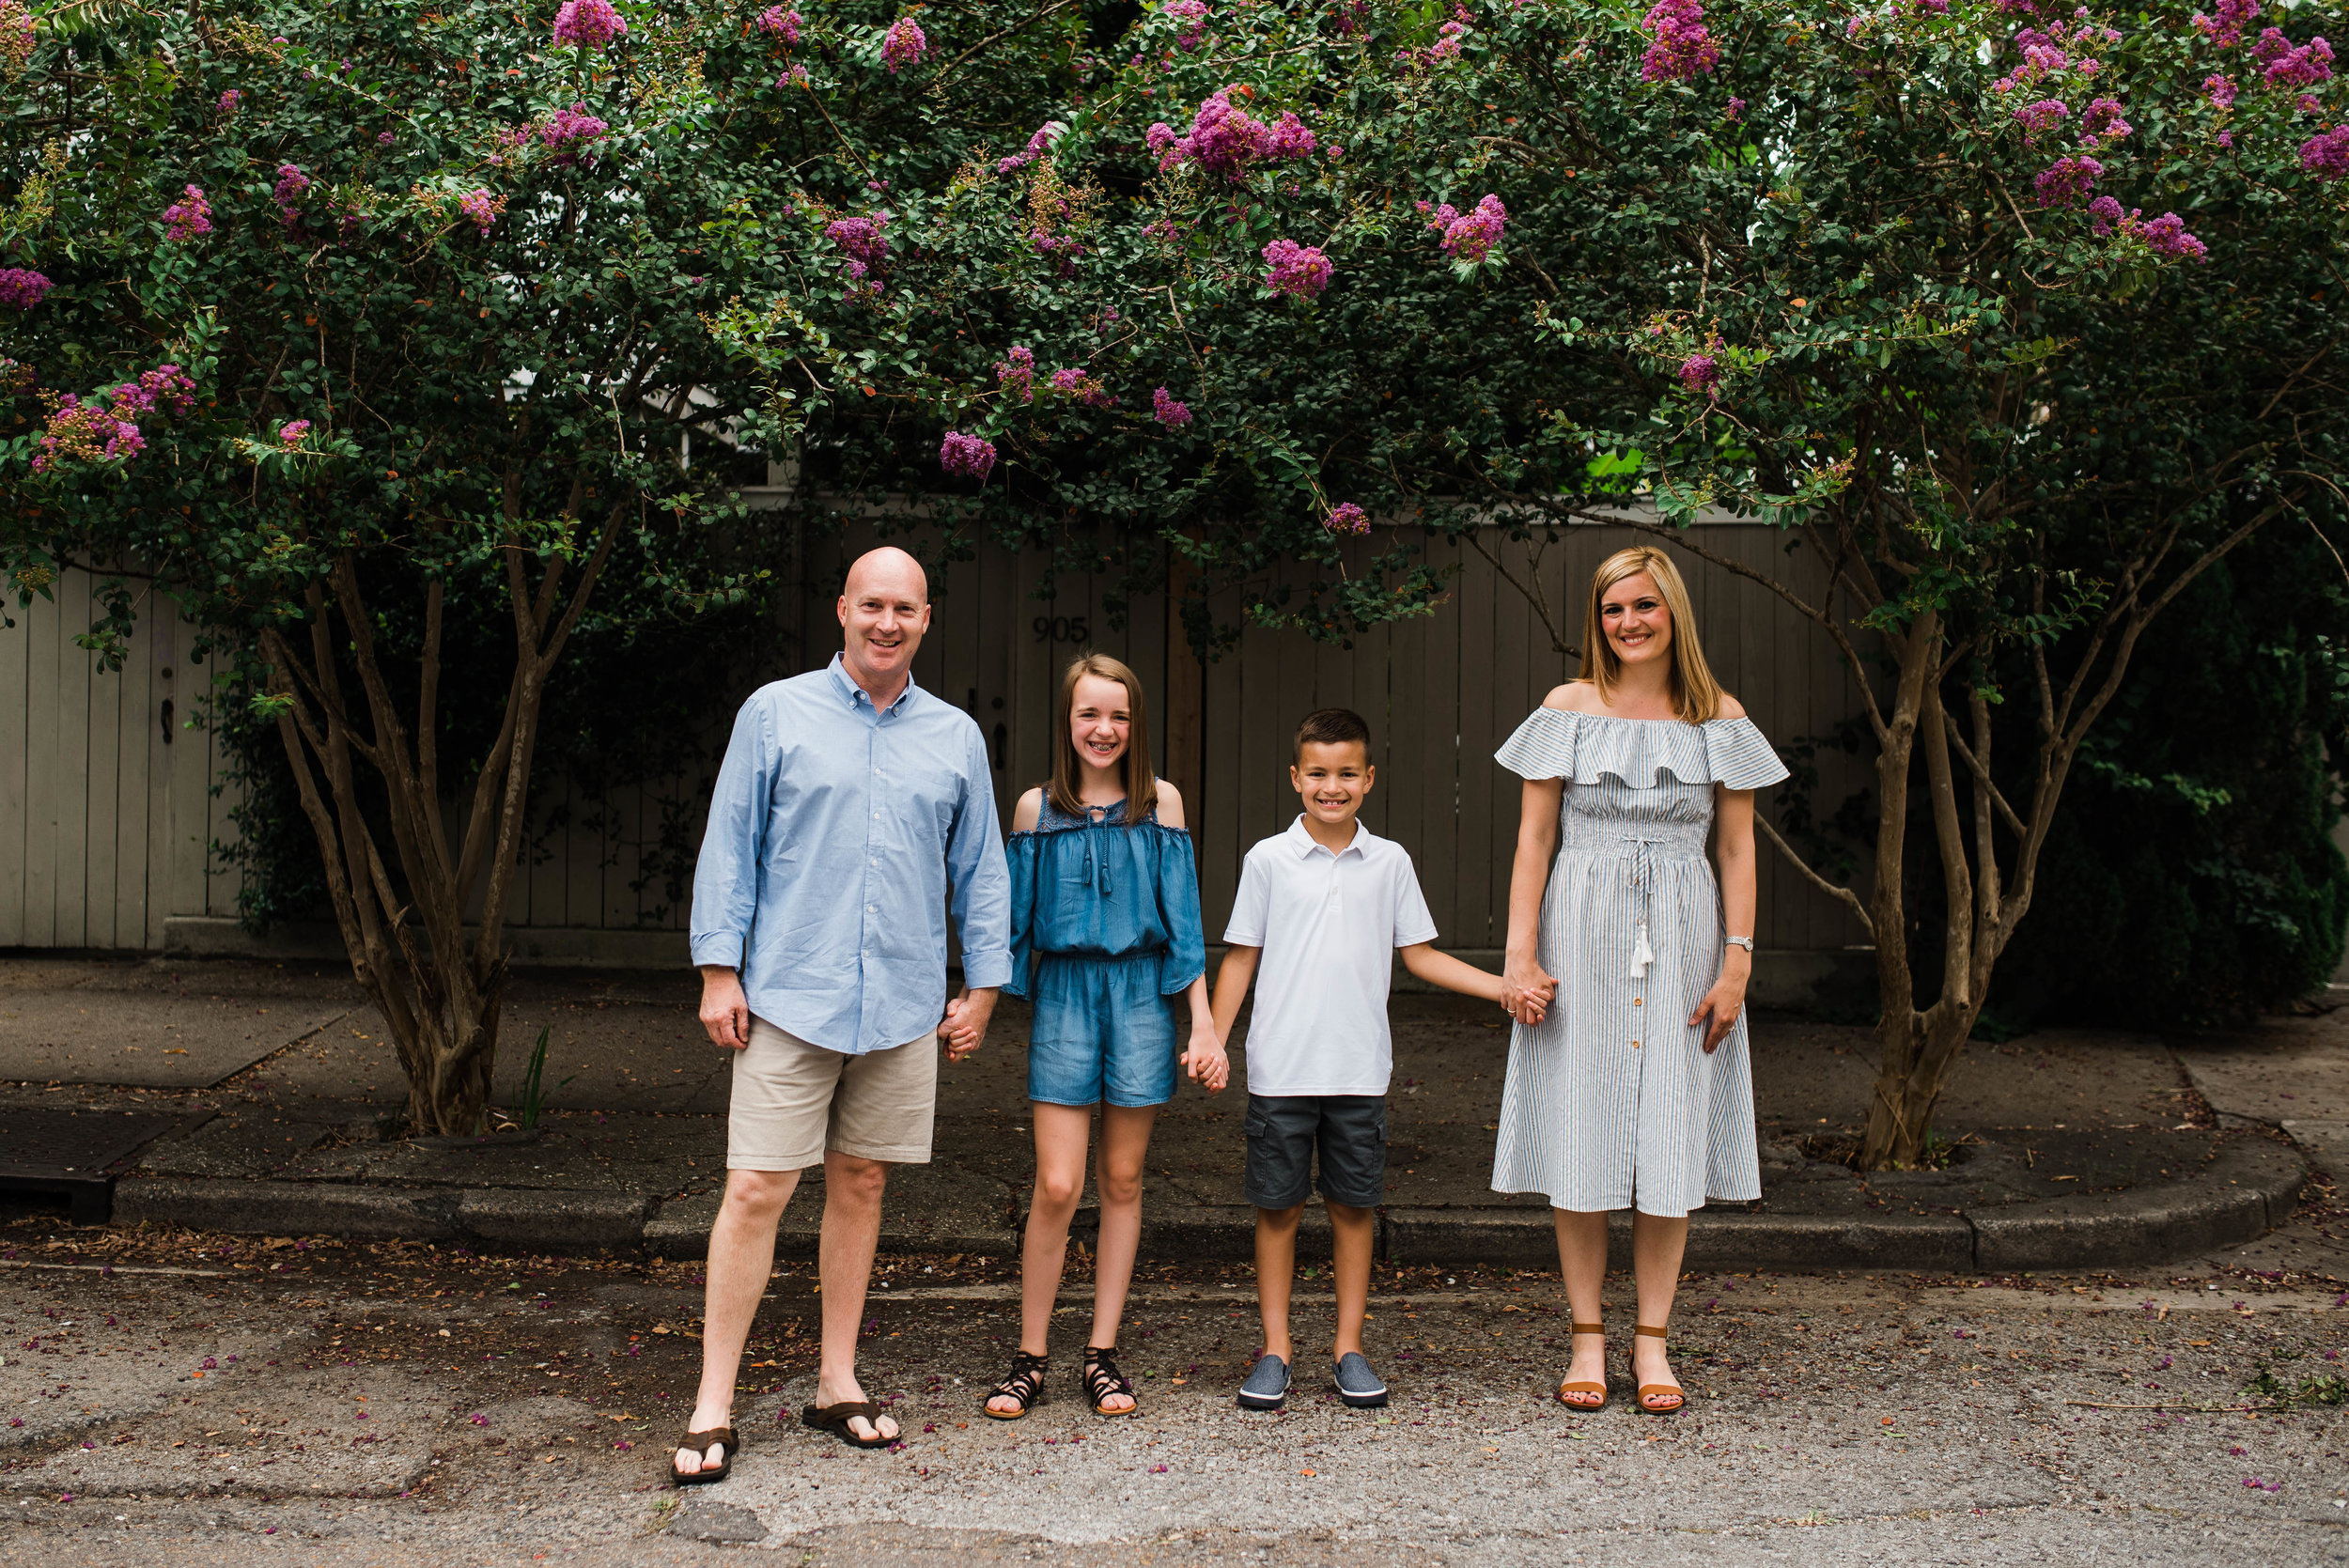 Conrad-Family-Photos-New-Orleans-French-Quarter_Gabby Chapin Photography_0027.jpg